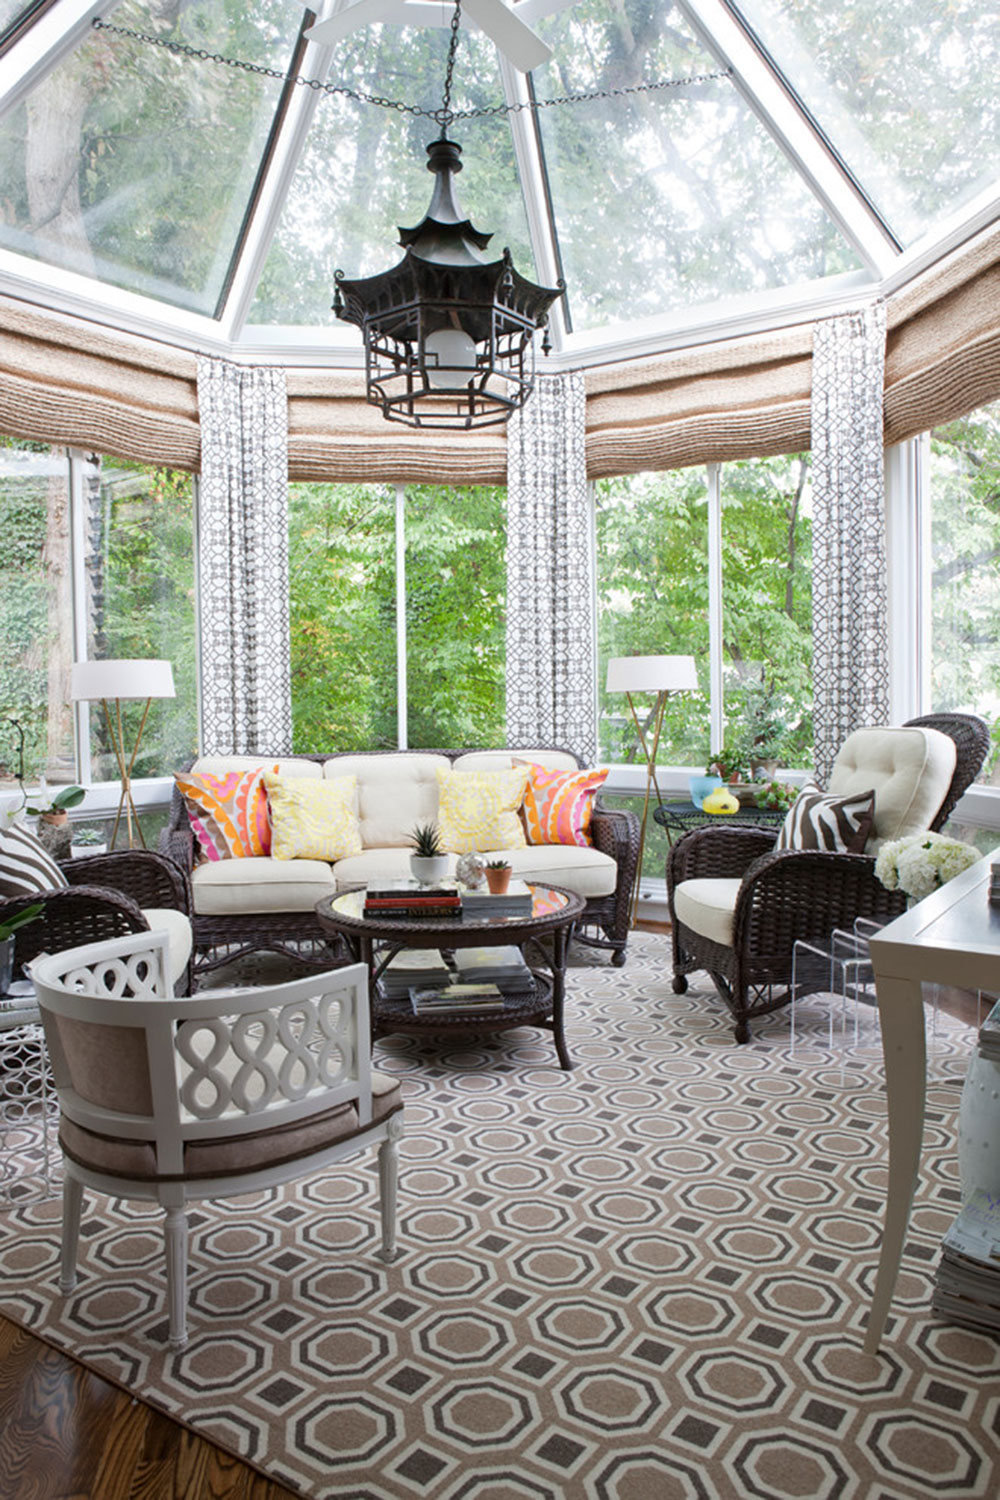 Homey-Feelings-With-These-Bay-Window-Decor-13 Bay window decor to try out in your home